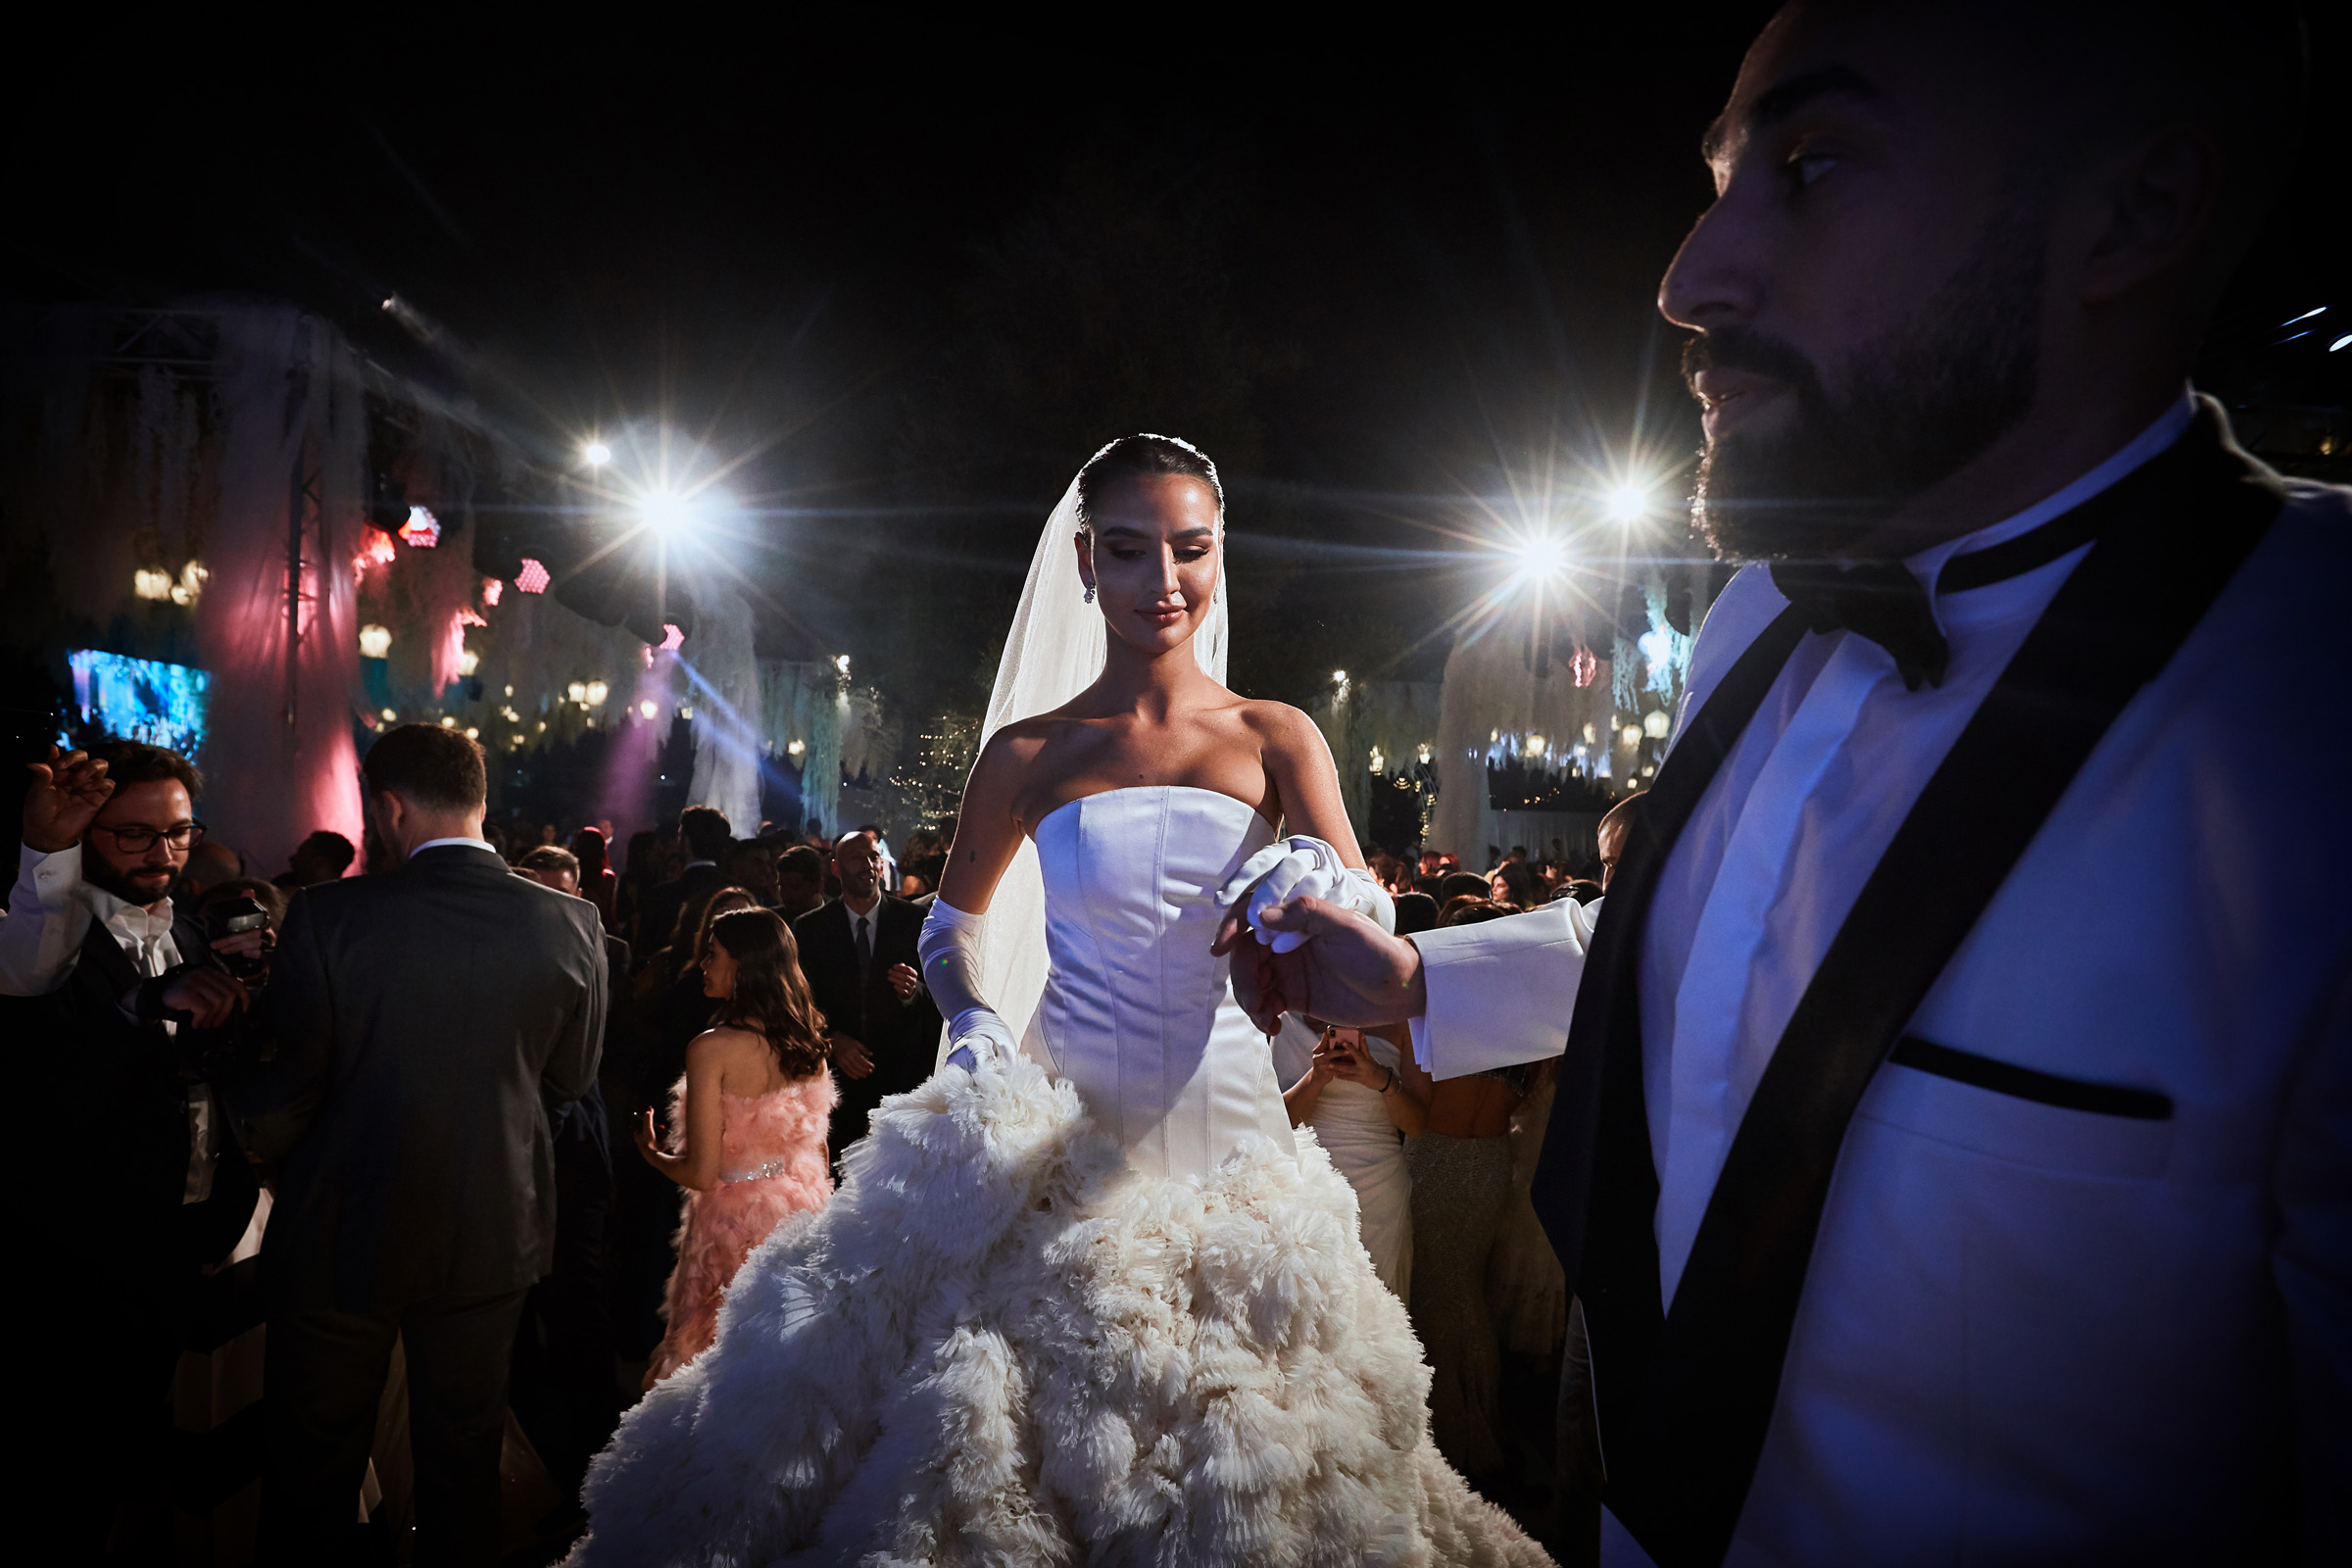 Bride takes groom's hand at reception - photo by Christophe Viseux Photography